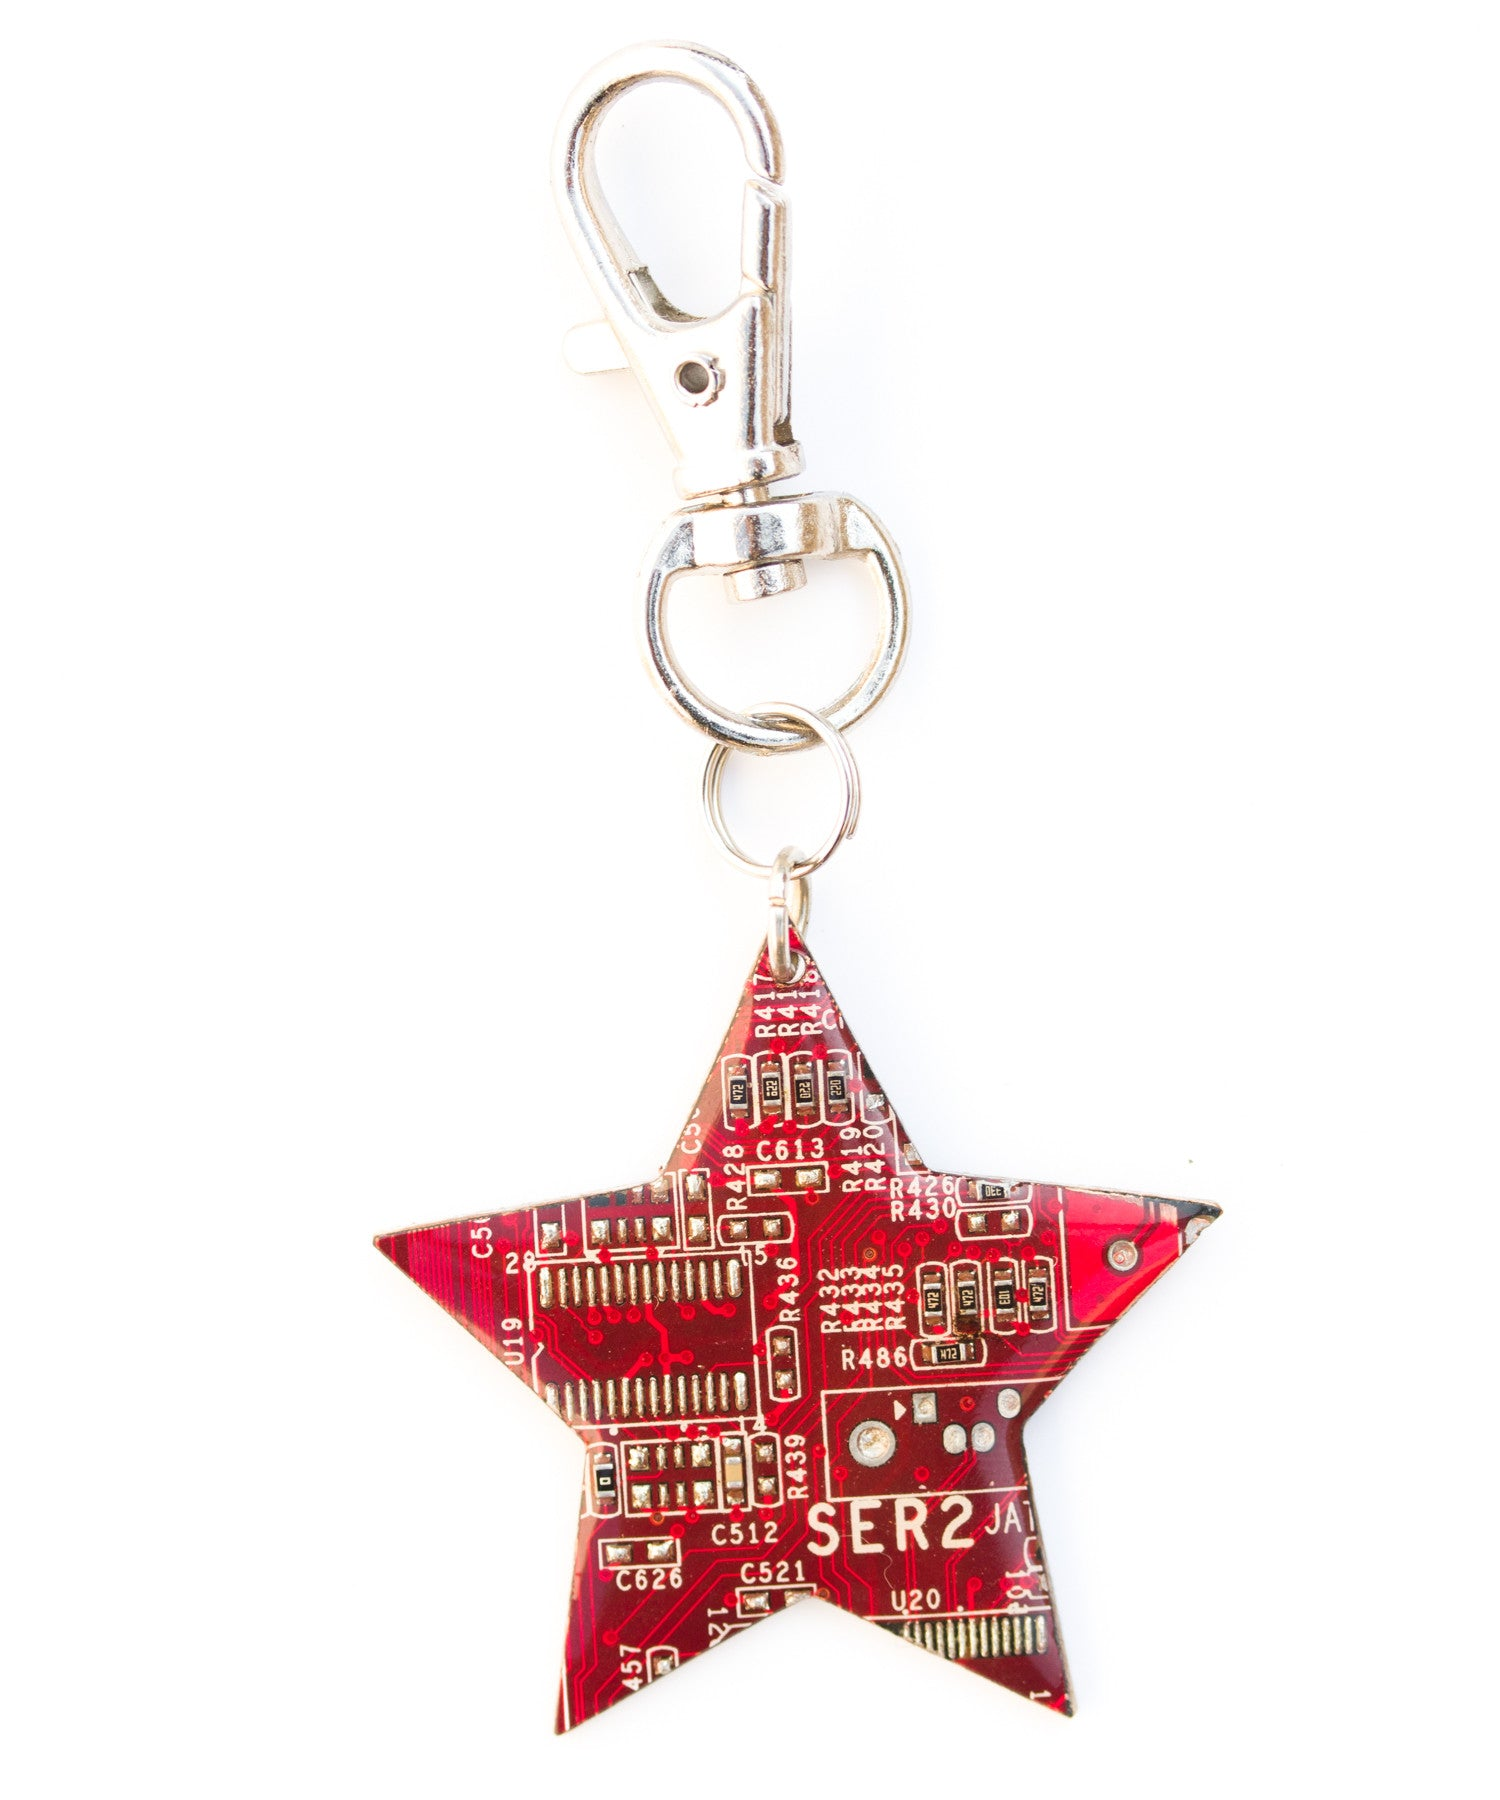 Circuit board star keychain